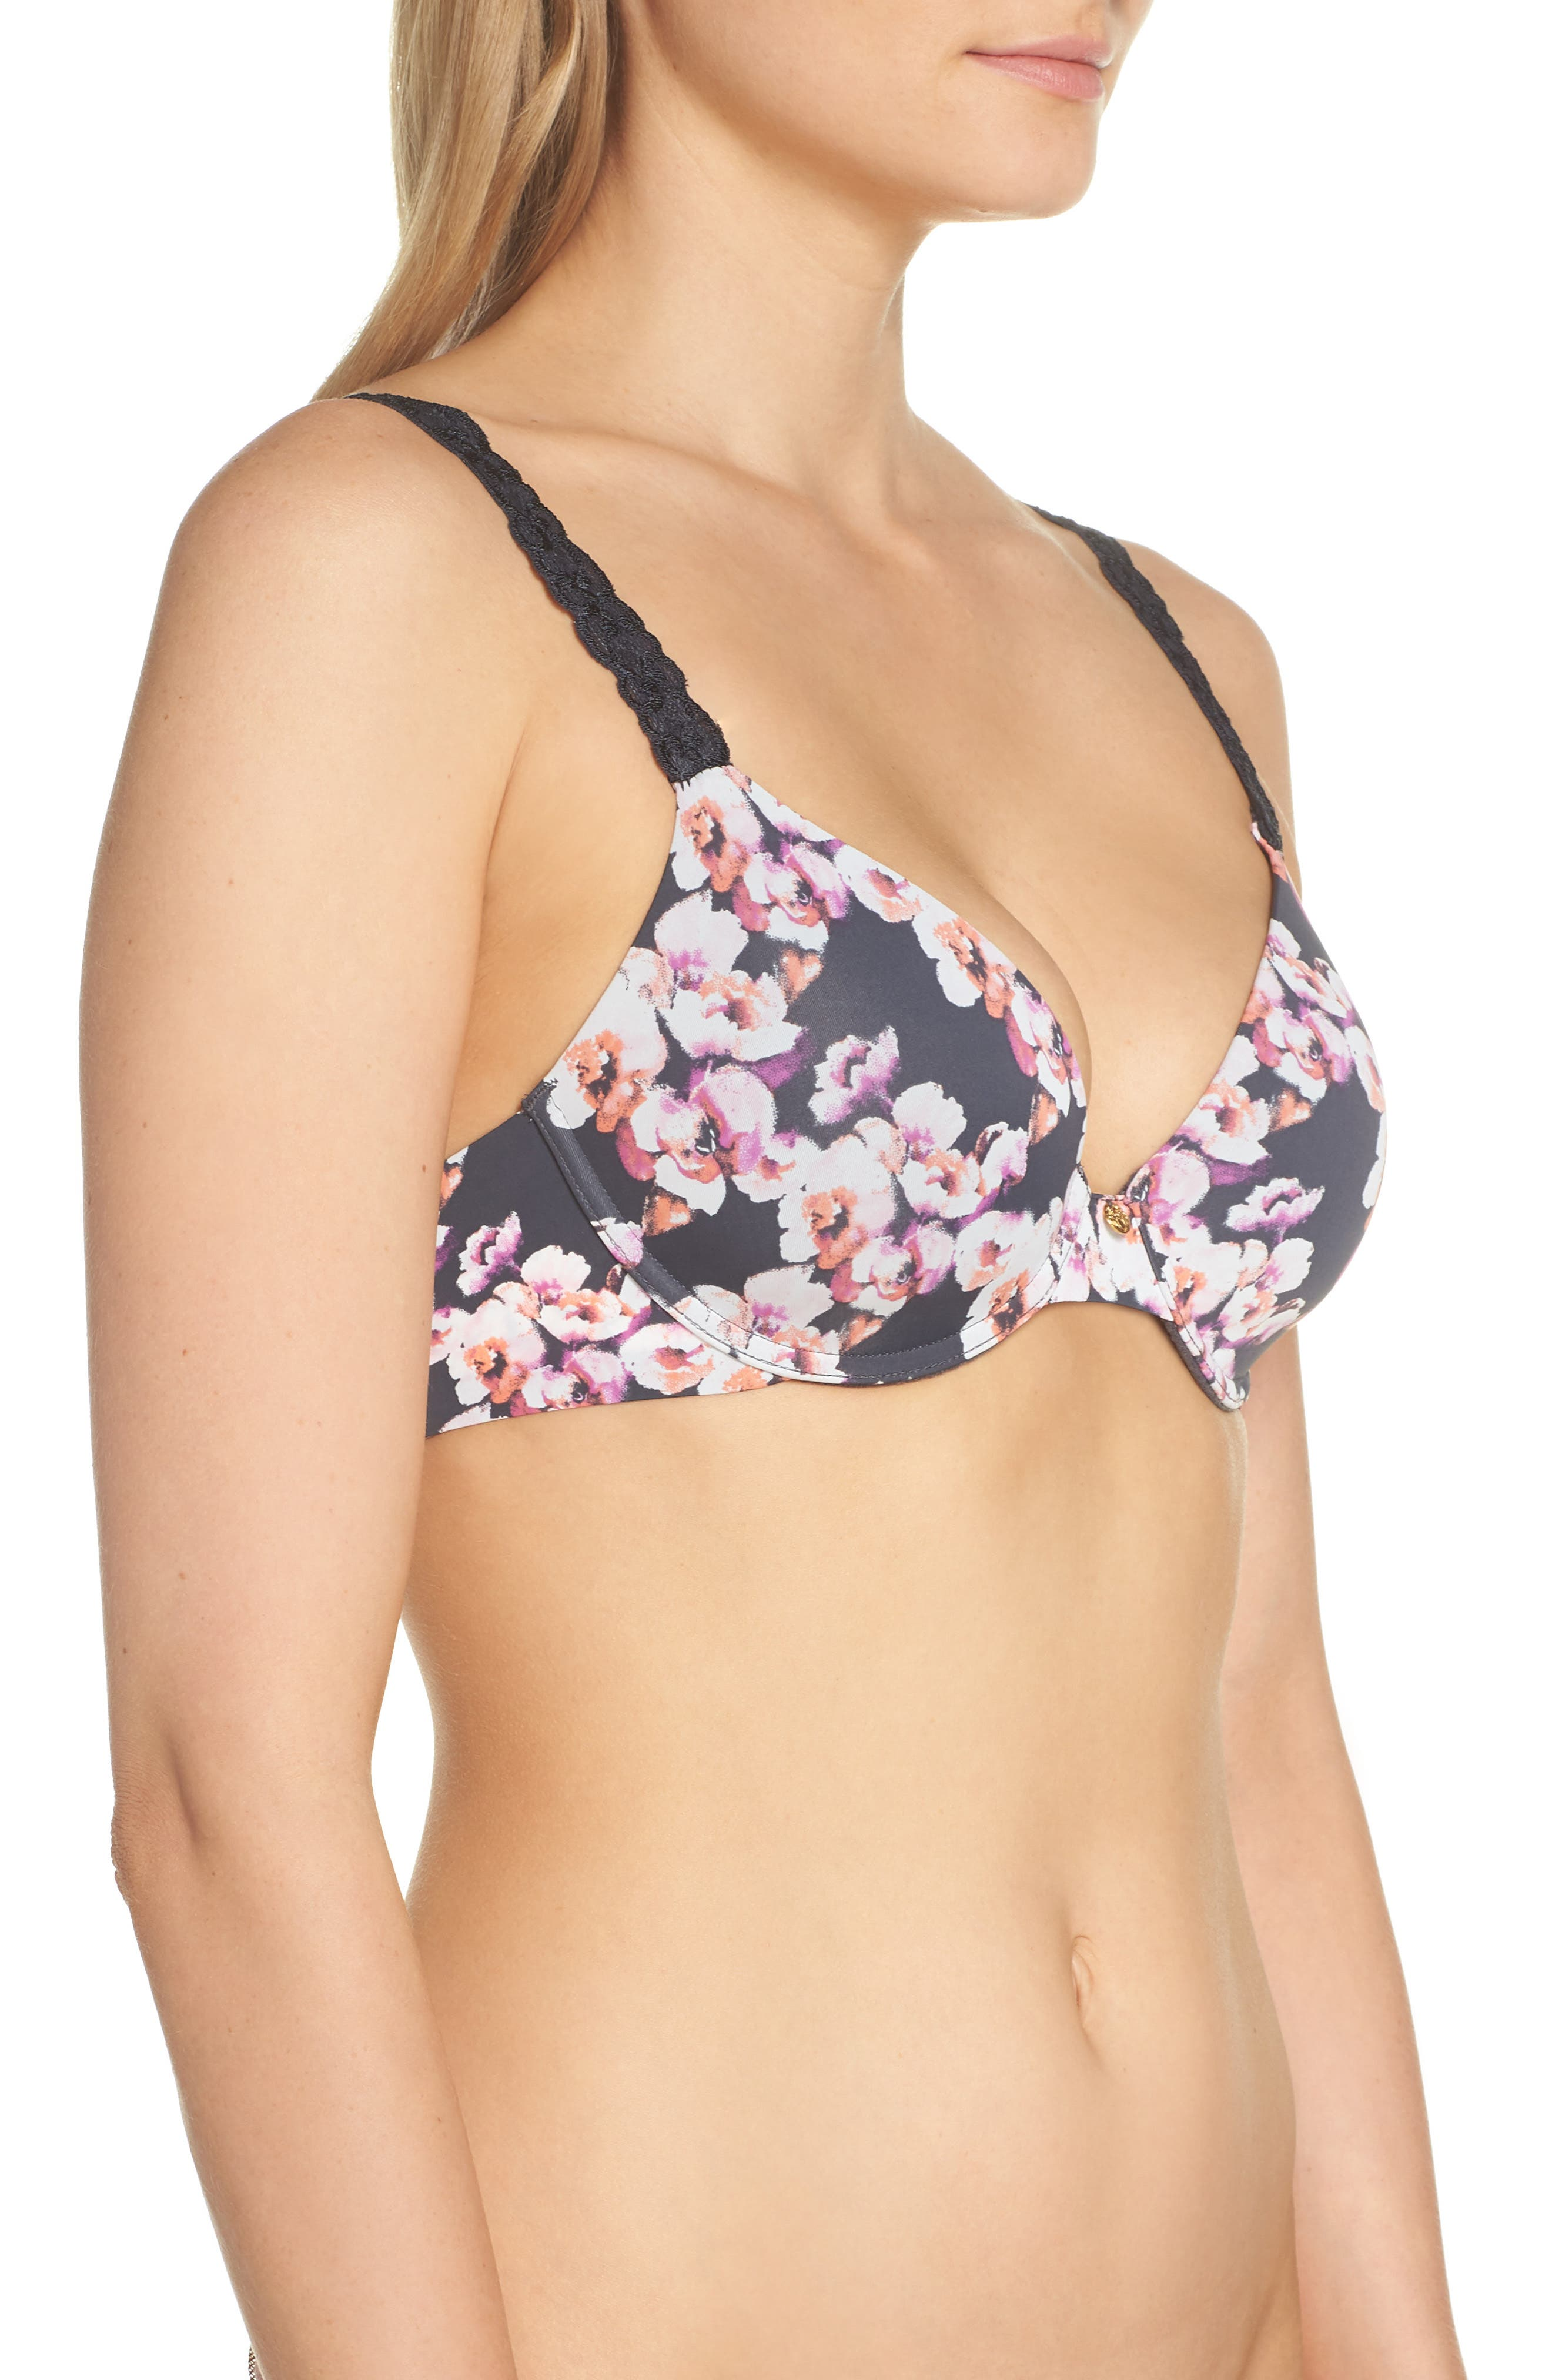 'Pure Luxe' Underwire T-Shirt Bra,                             Alternate thumbnail 65, color,